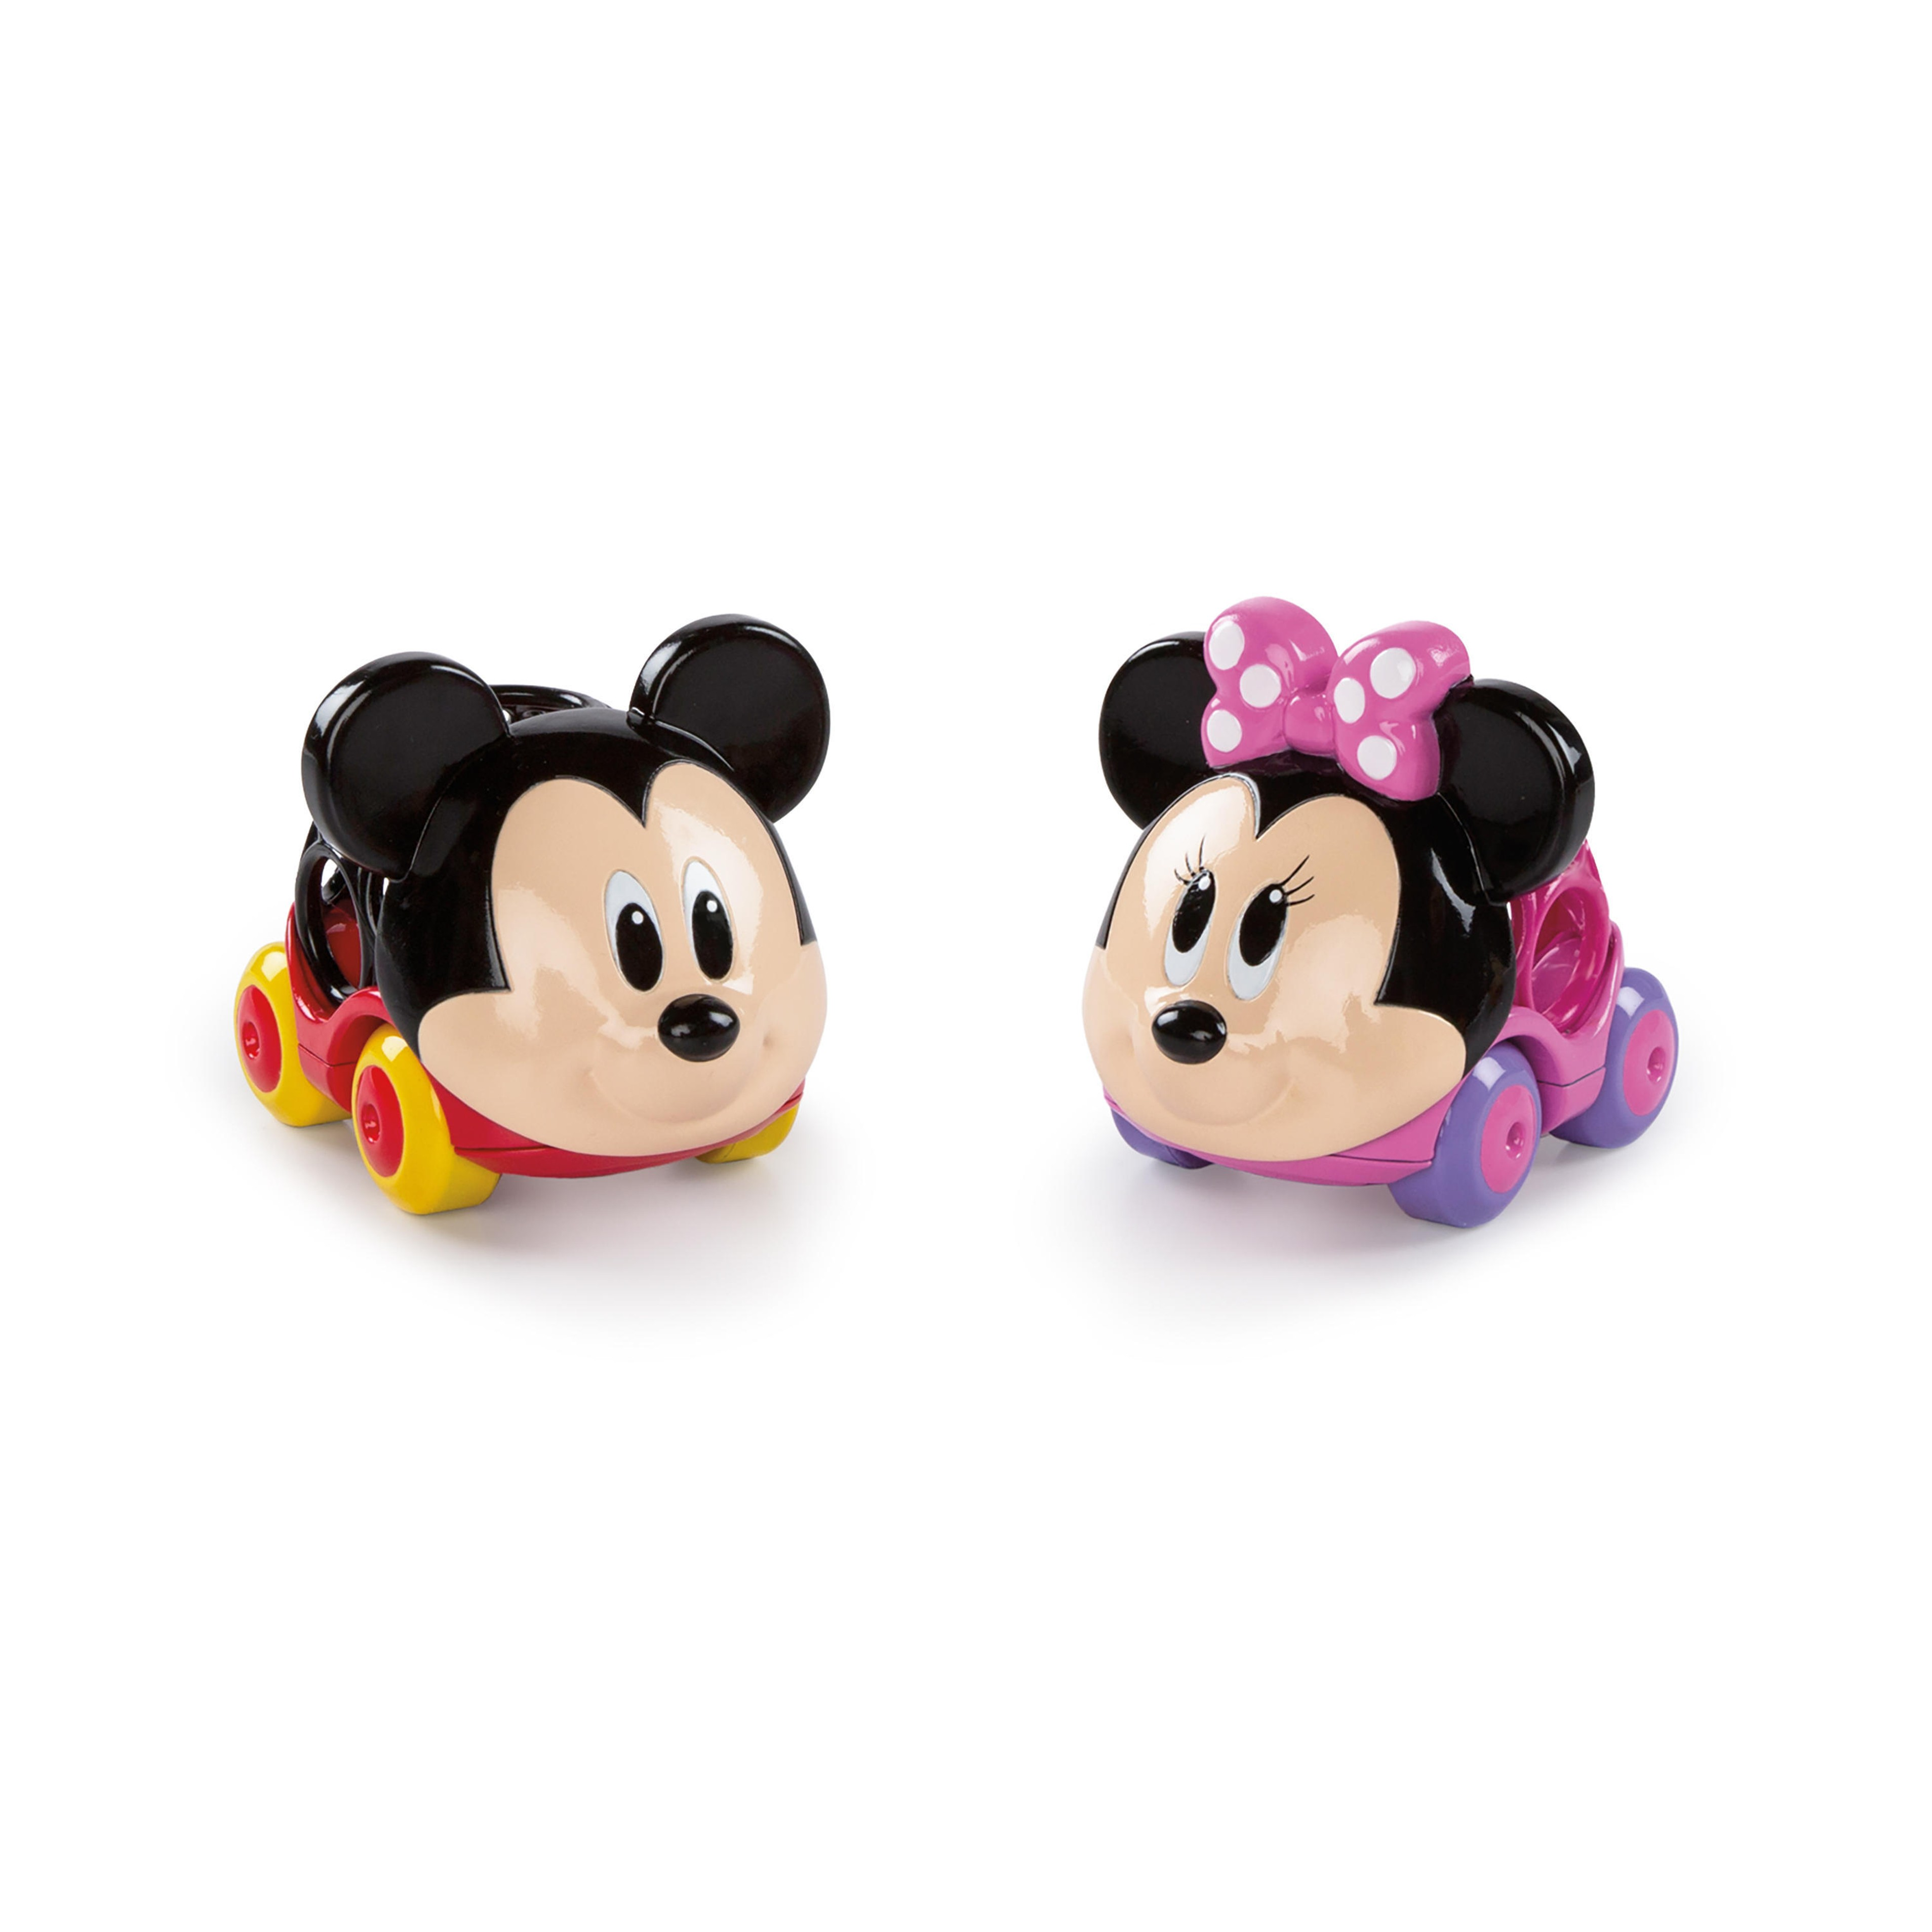 DISNEY BABY Hračka autíčka Mickey Mouse&Friends Go Grippers™ 2ks 12m